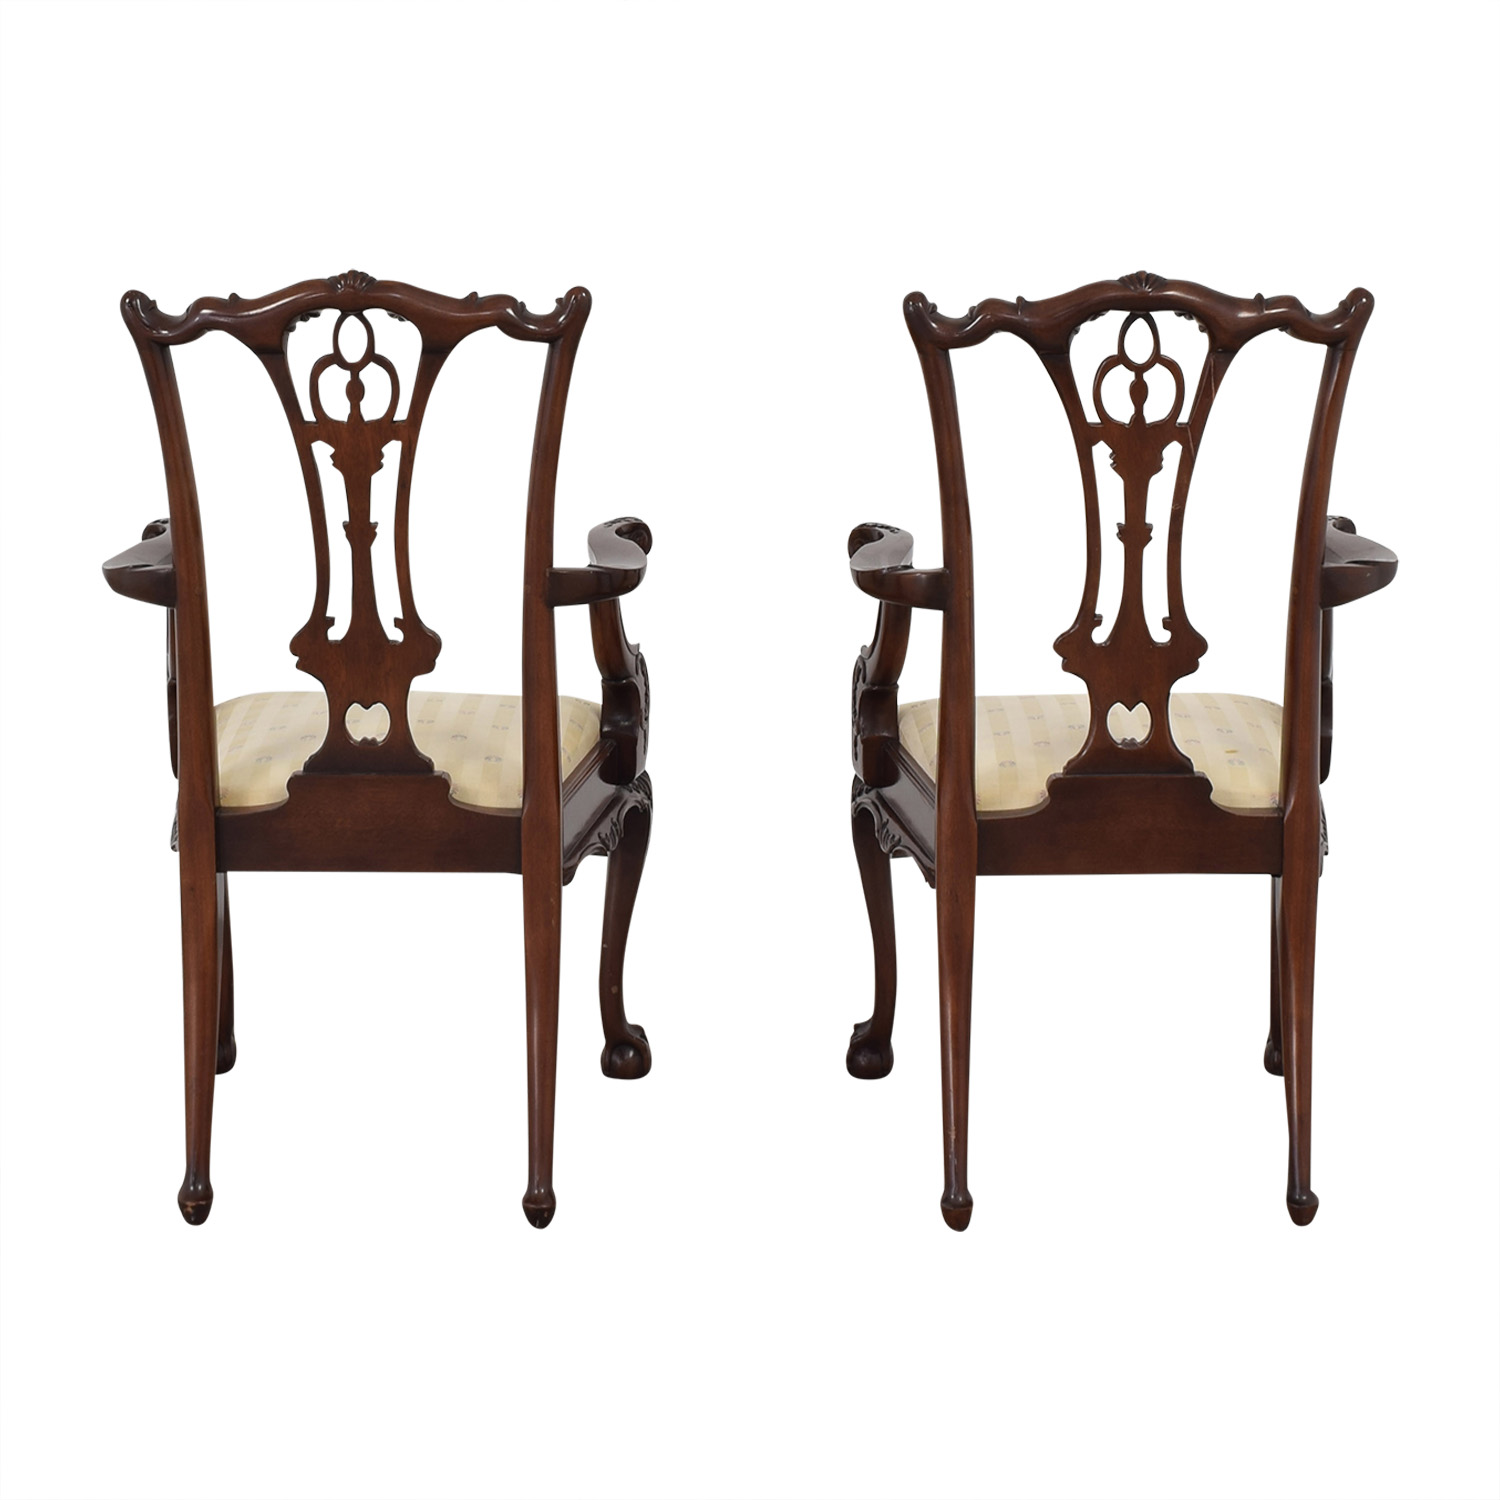 buy Macy's Hickory Furniture Upholstered Dining Chairs online